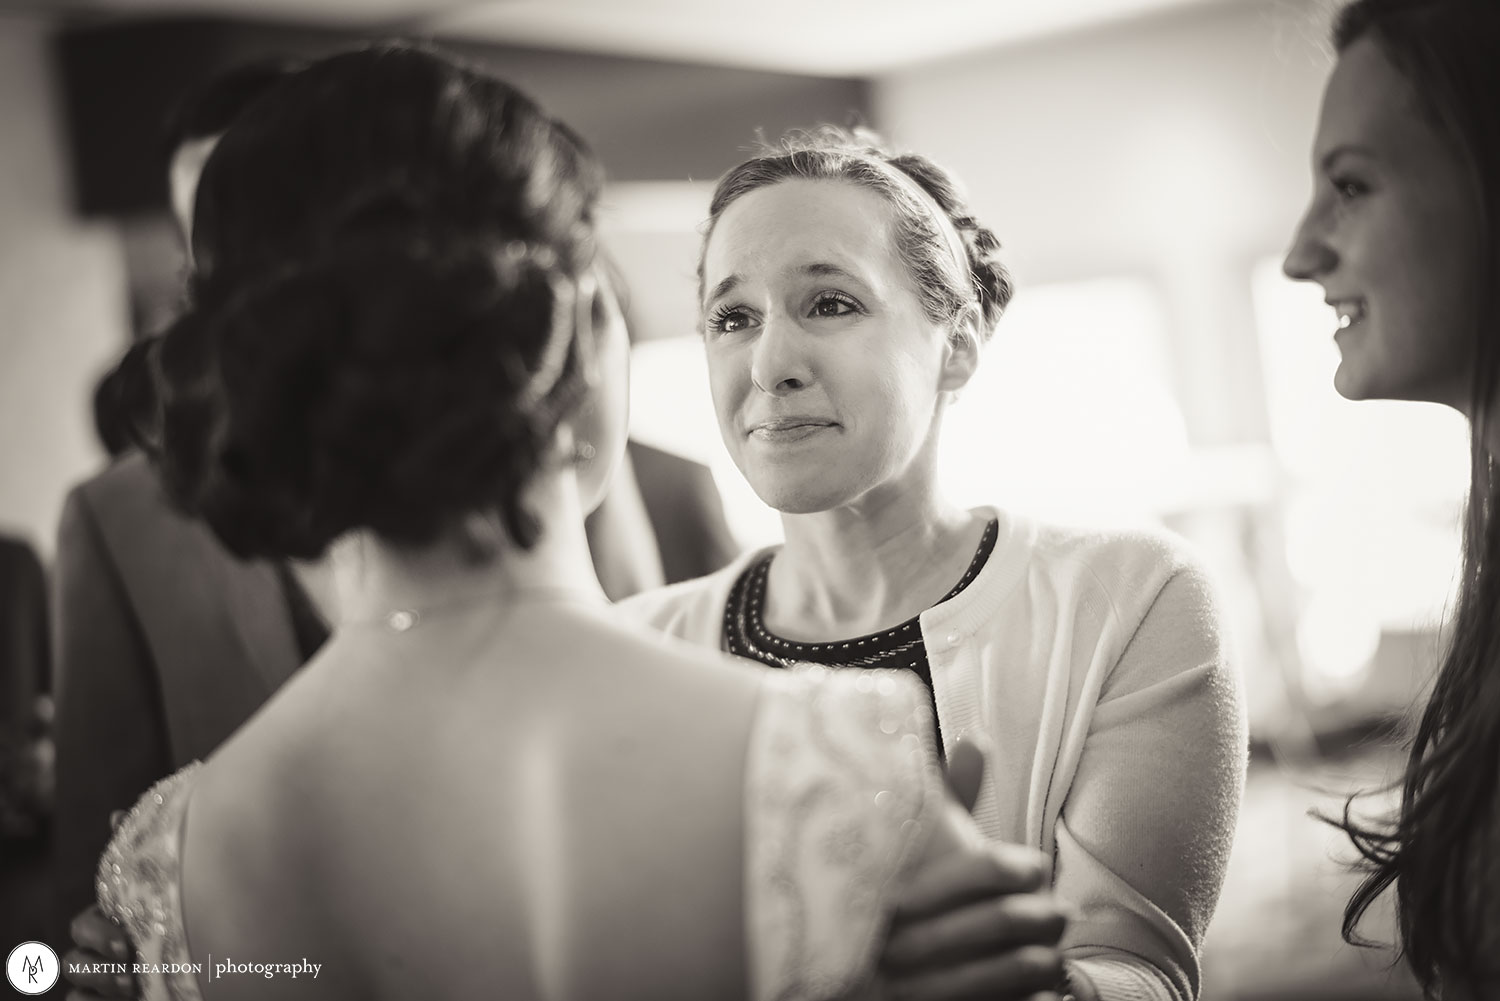 8-Emotional-Moment-With-Bride.jpg